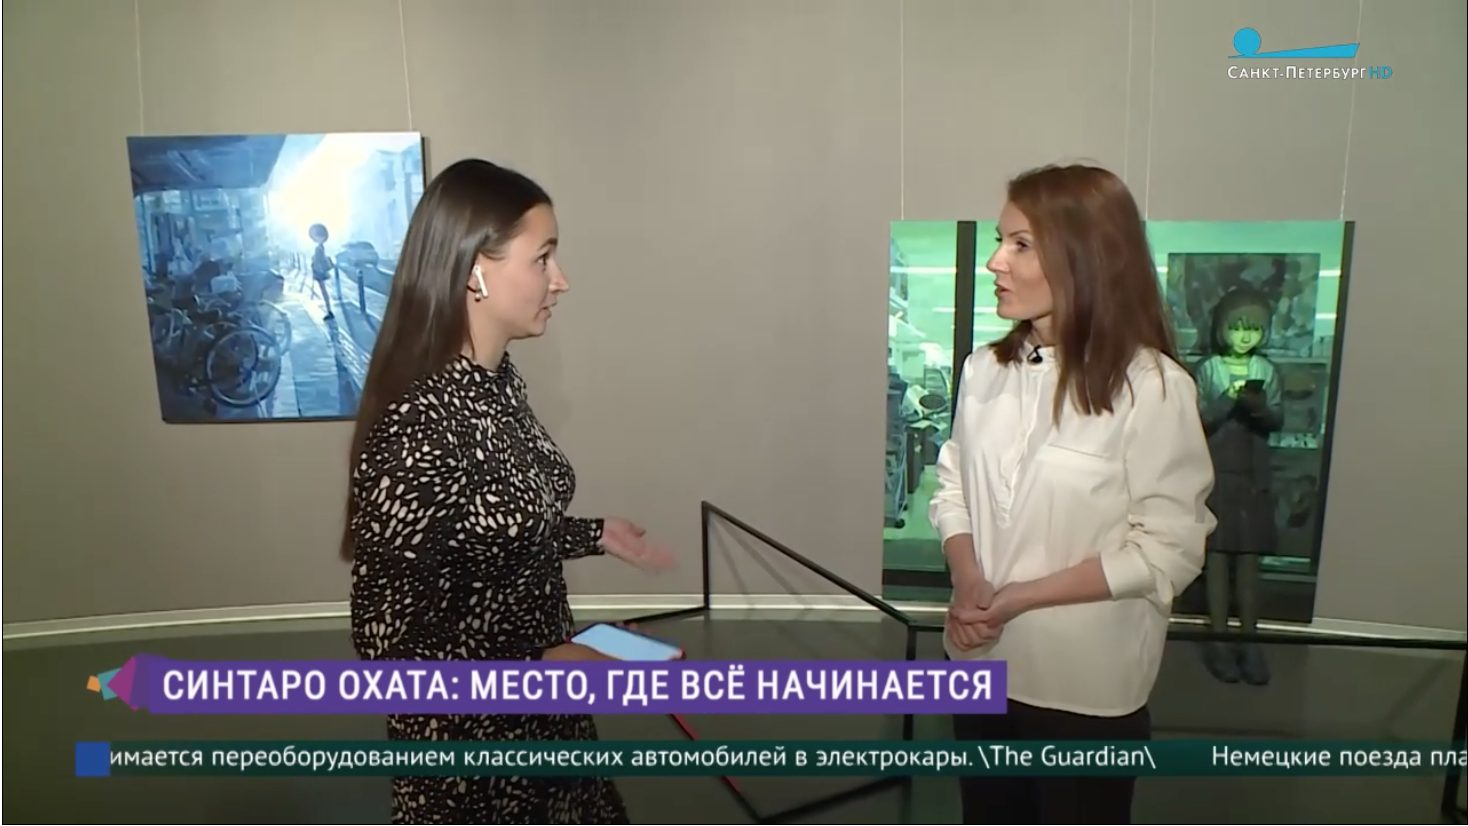 《Media Appearances》Ohata's exhibition at ERARTA Museum of Contemporary Art in St.Petersburg